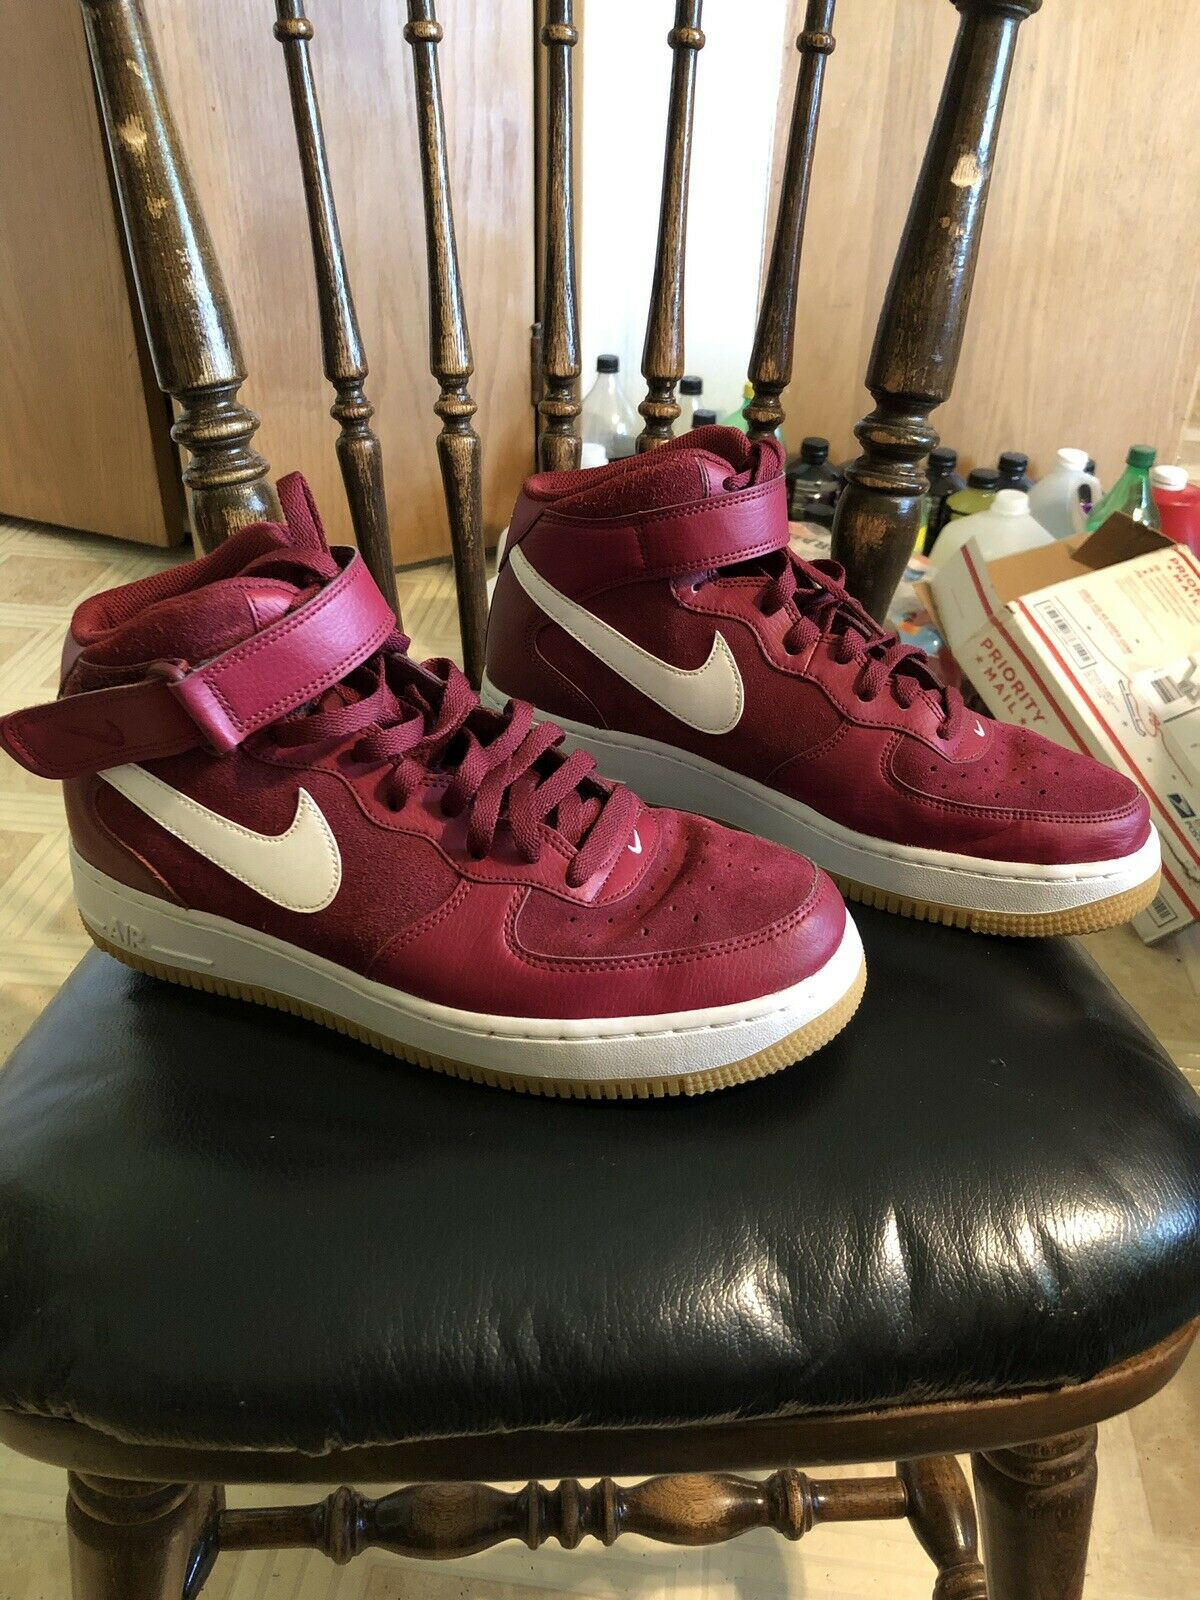 Nike Air Force 1 Mid 07 Red White Shoes Sneakers Size 9